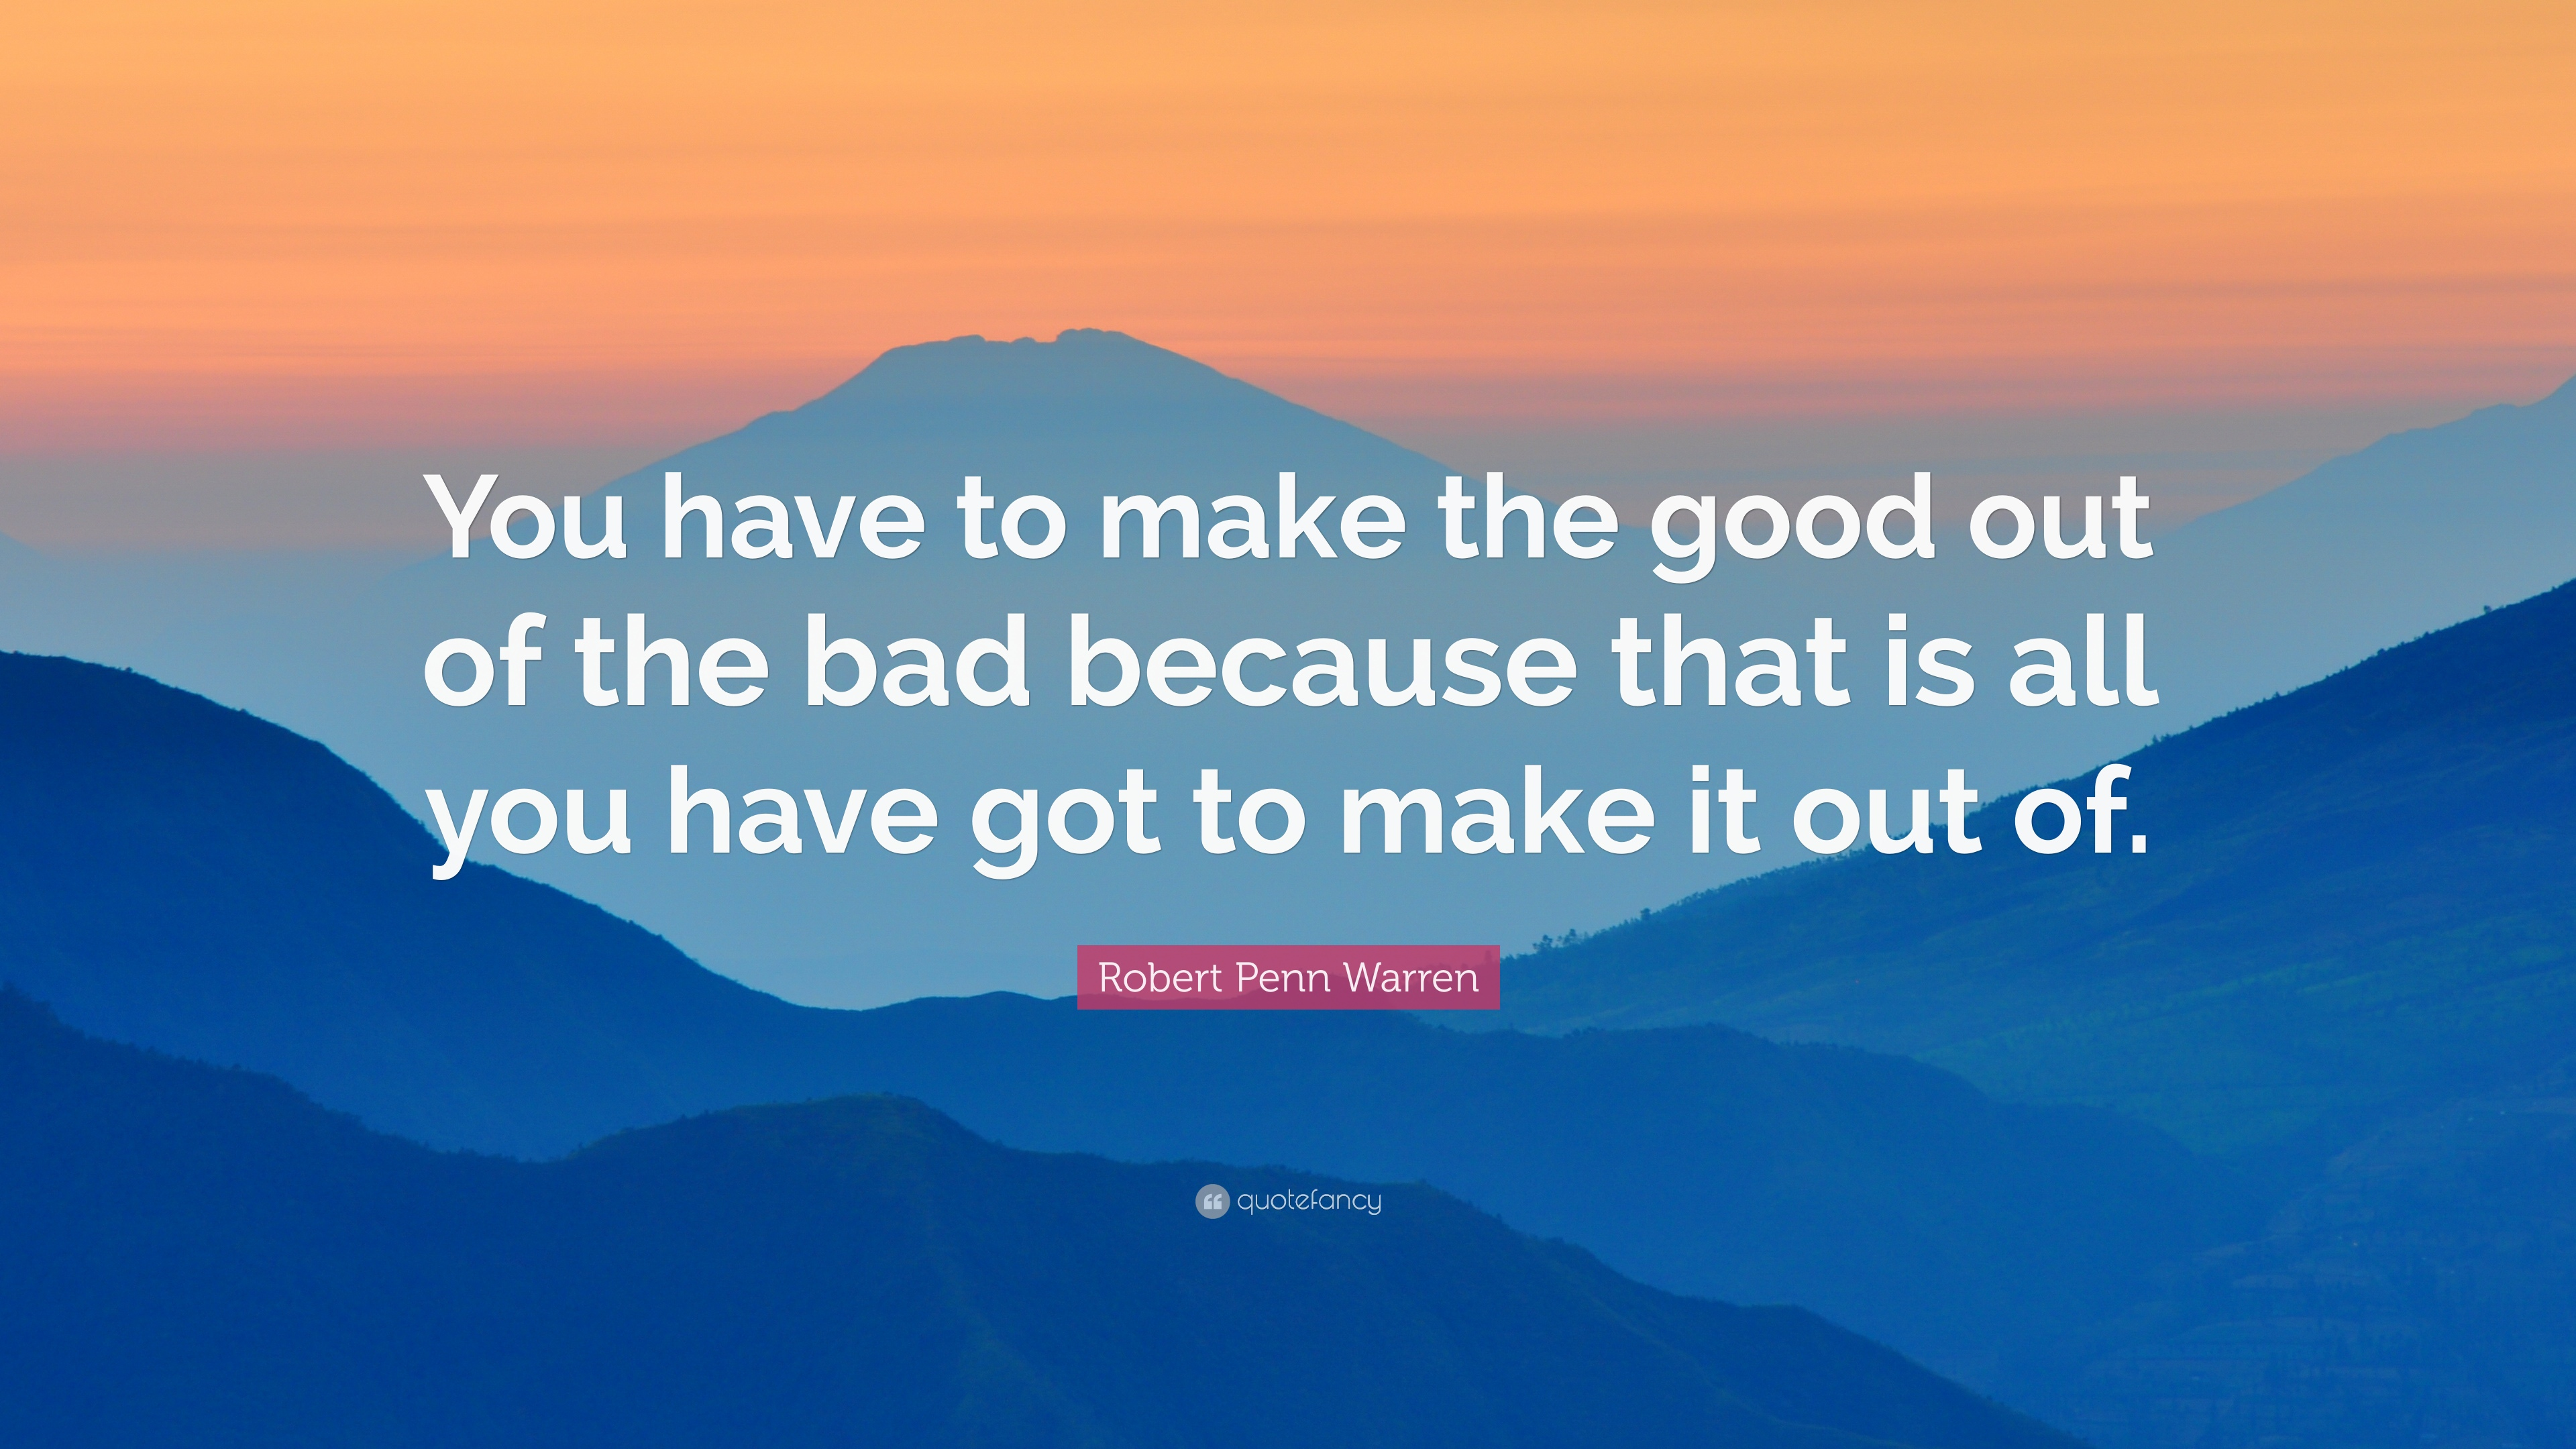 Robert Penn Warren Quote You Have To Make The Good Out Of The Bad